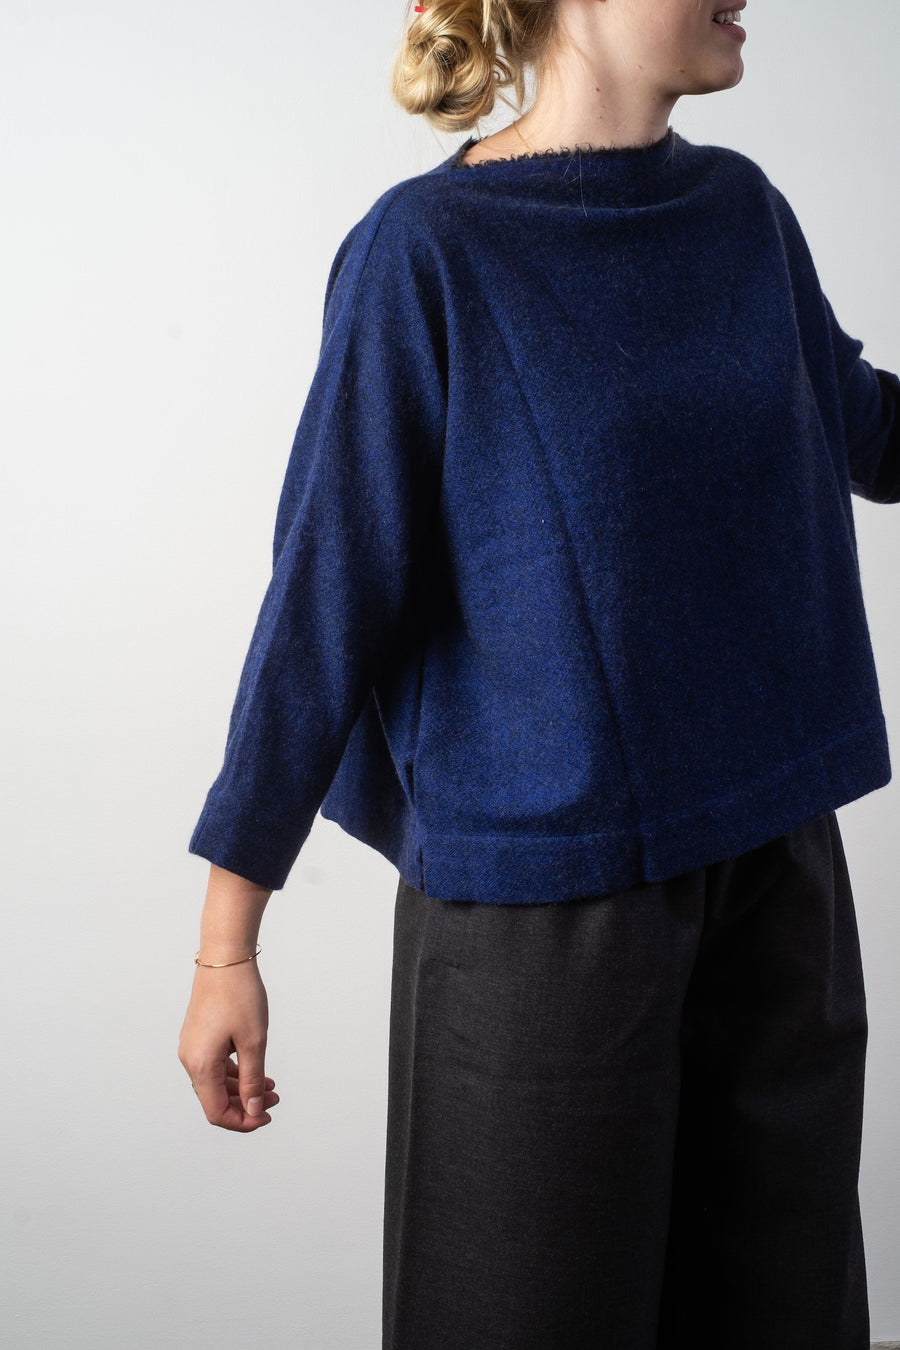 selvage edge cashmere top